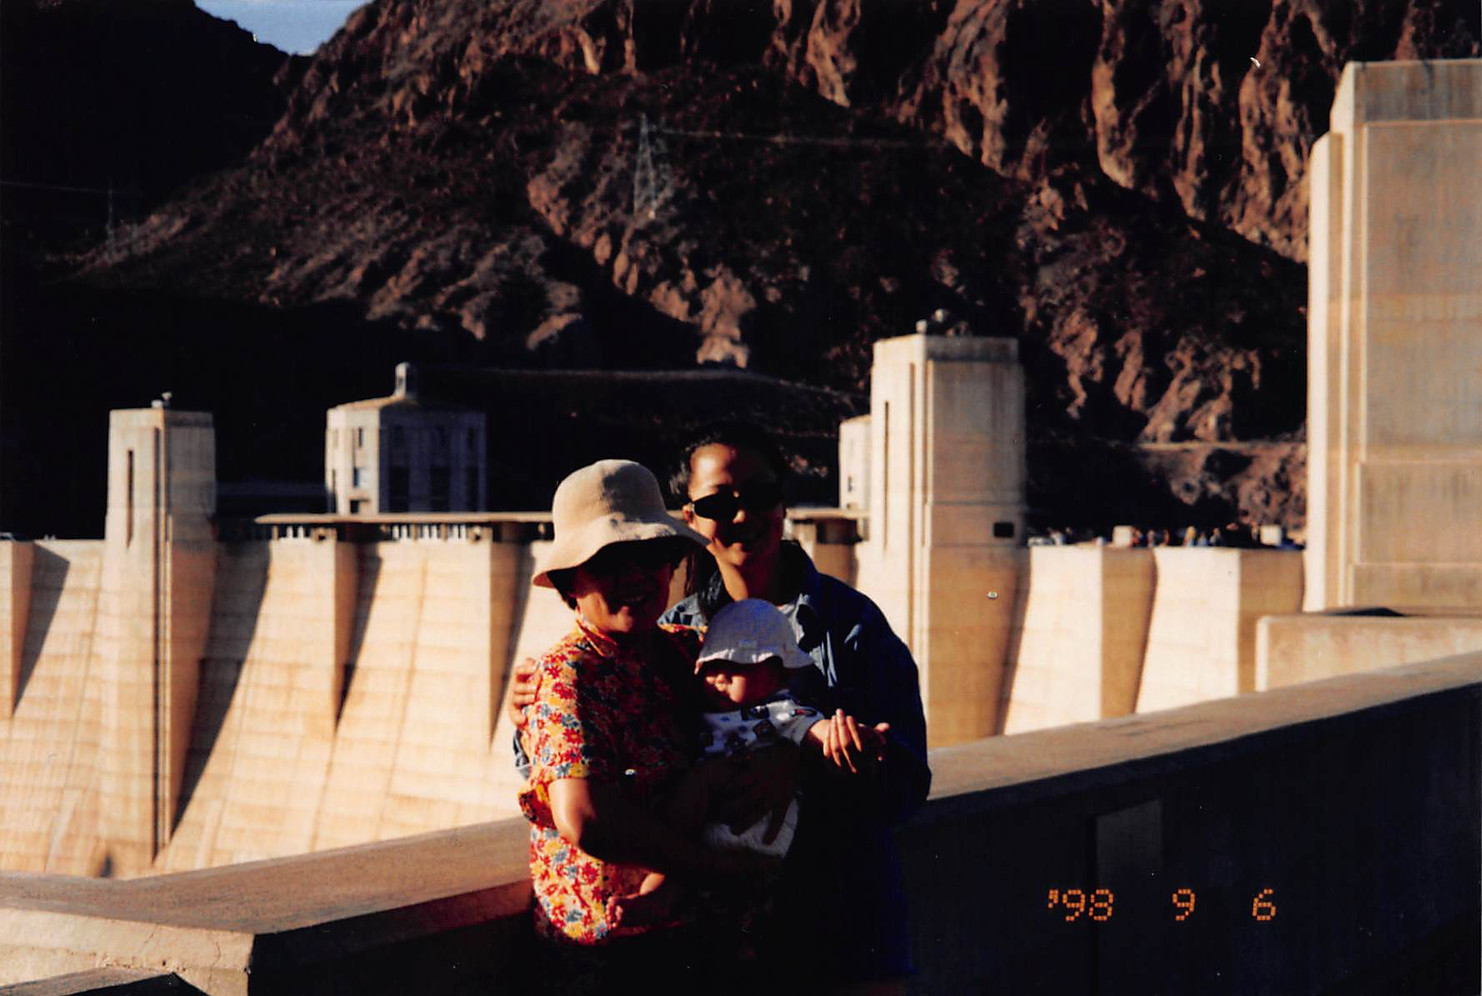 1998-Sept-7-at Hoover Dam